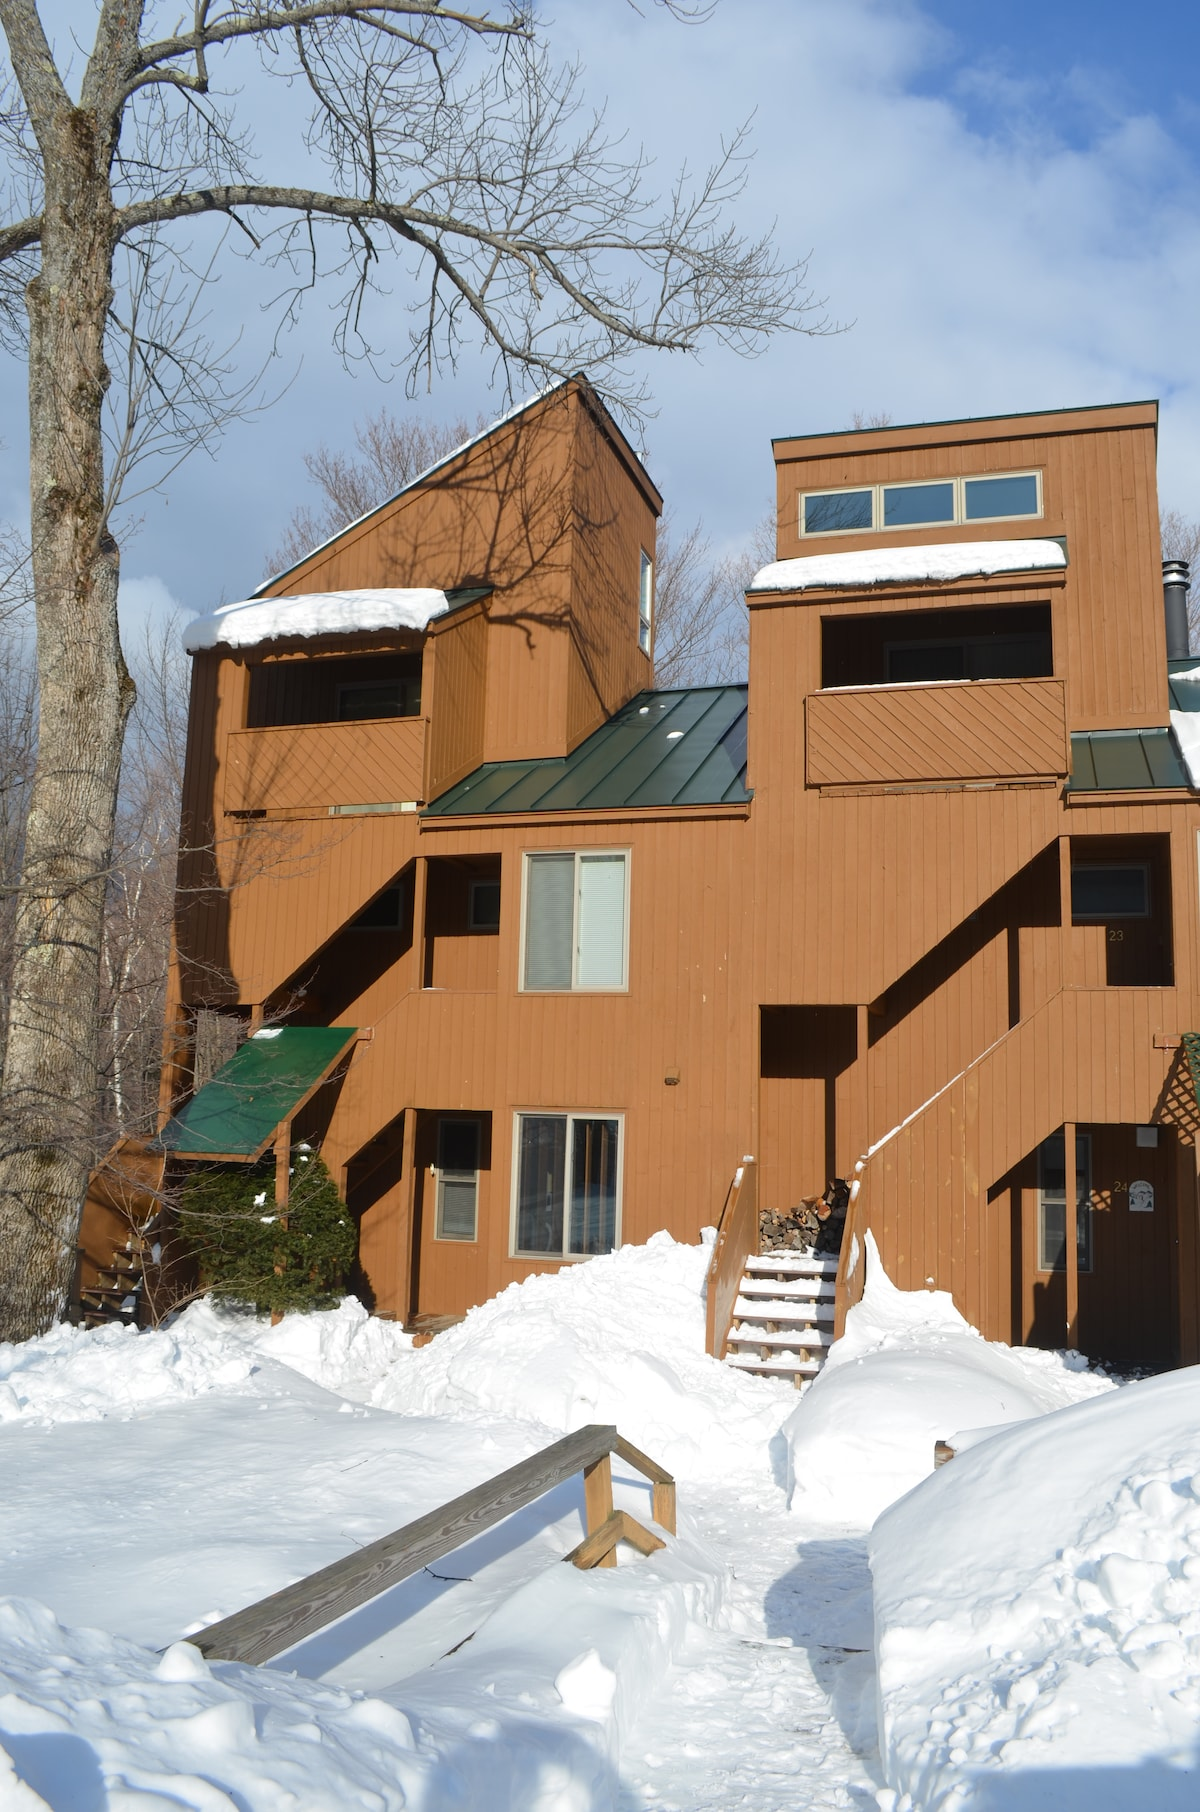 1 Bedroom Ski Condo - Sugarbush VT